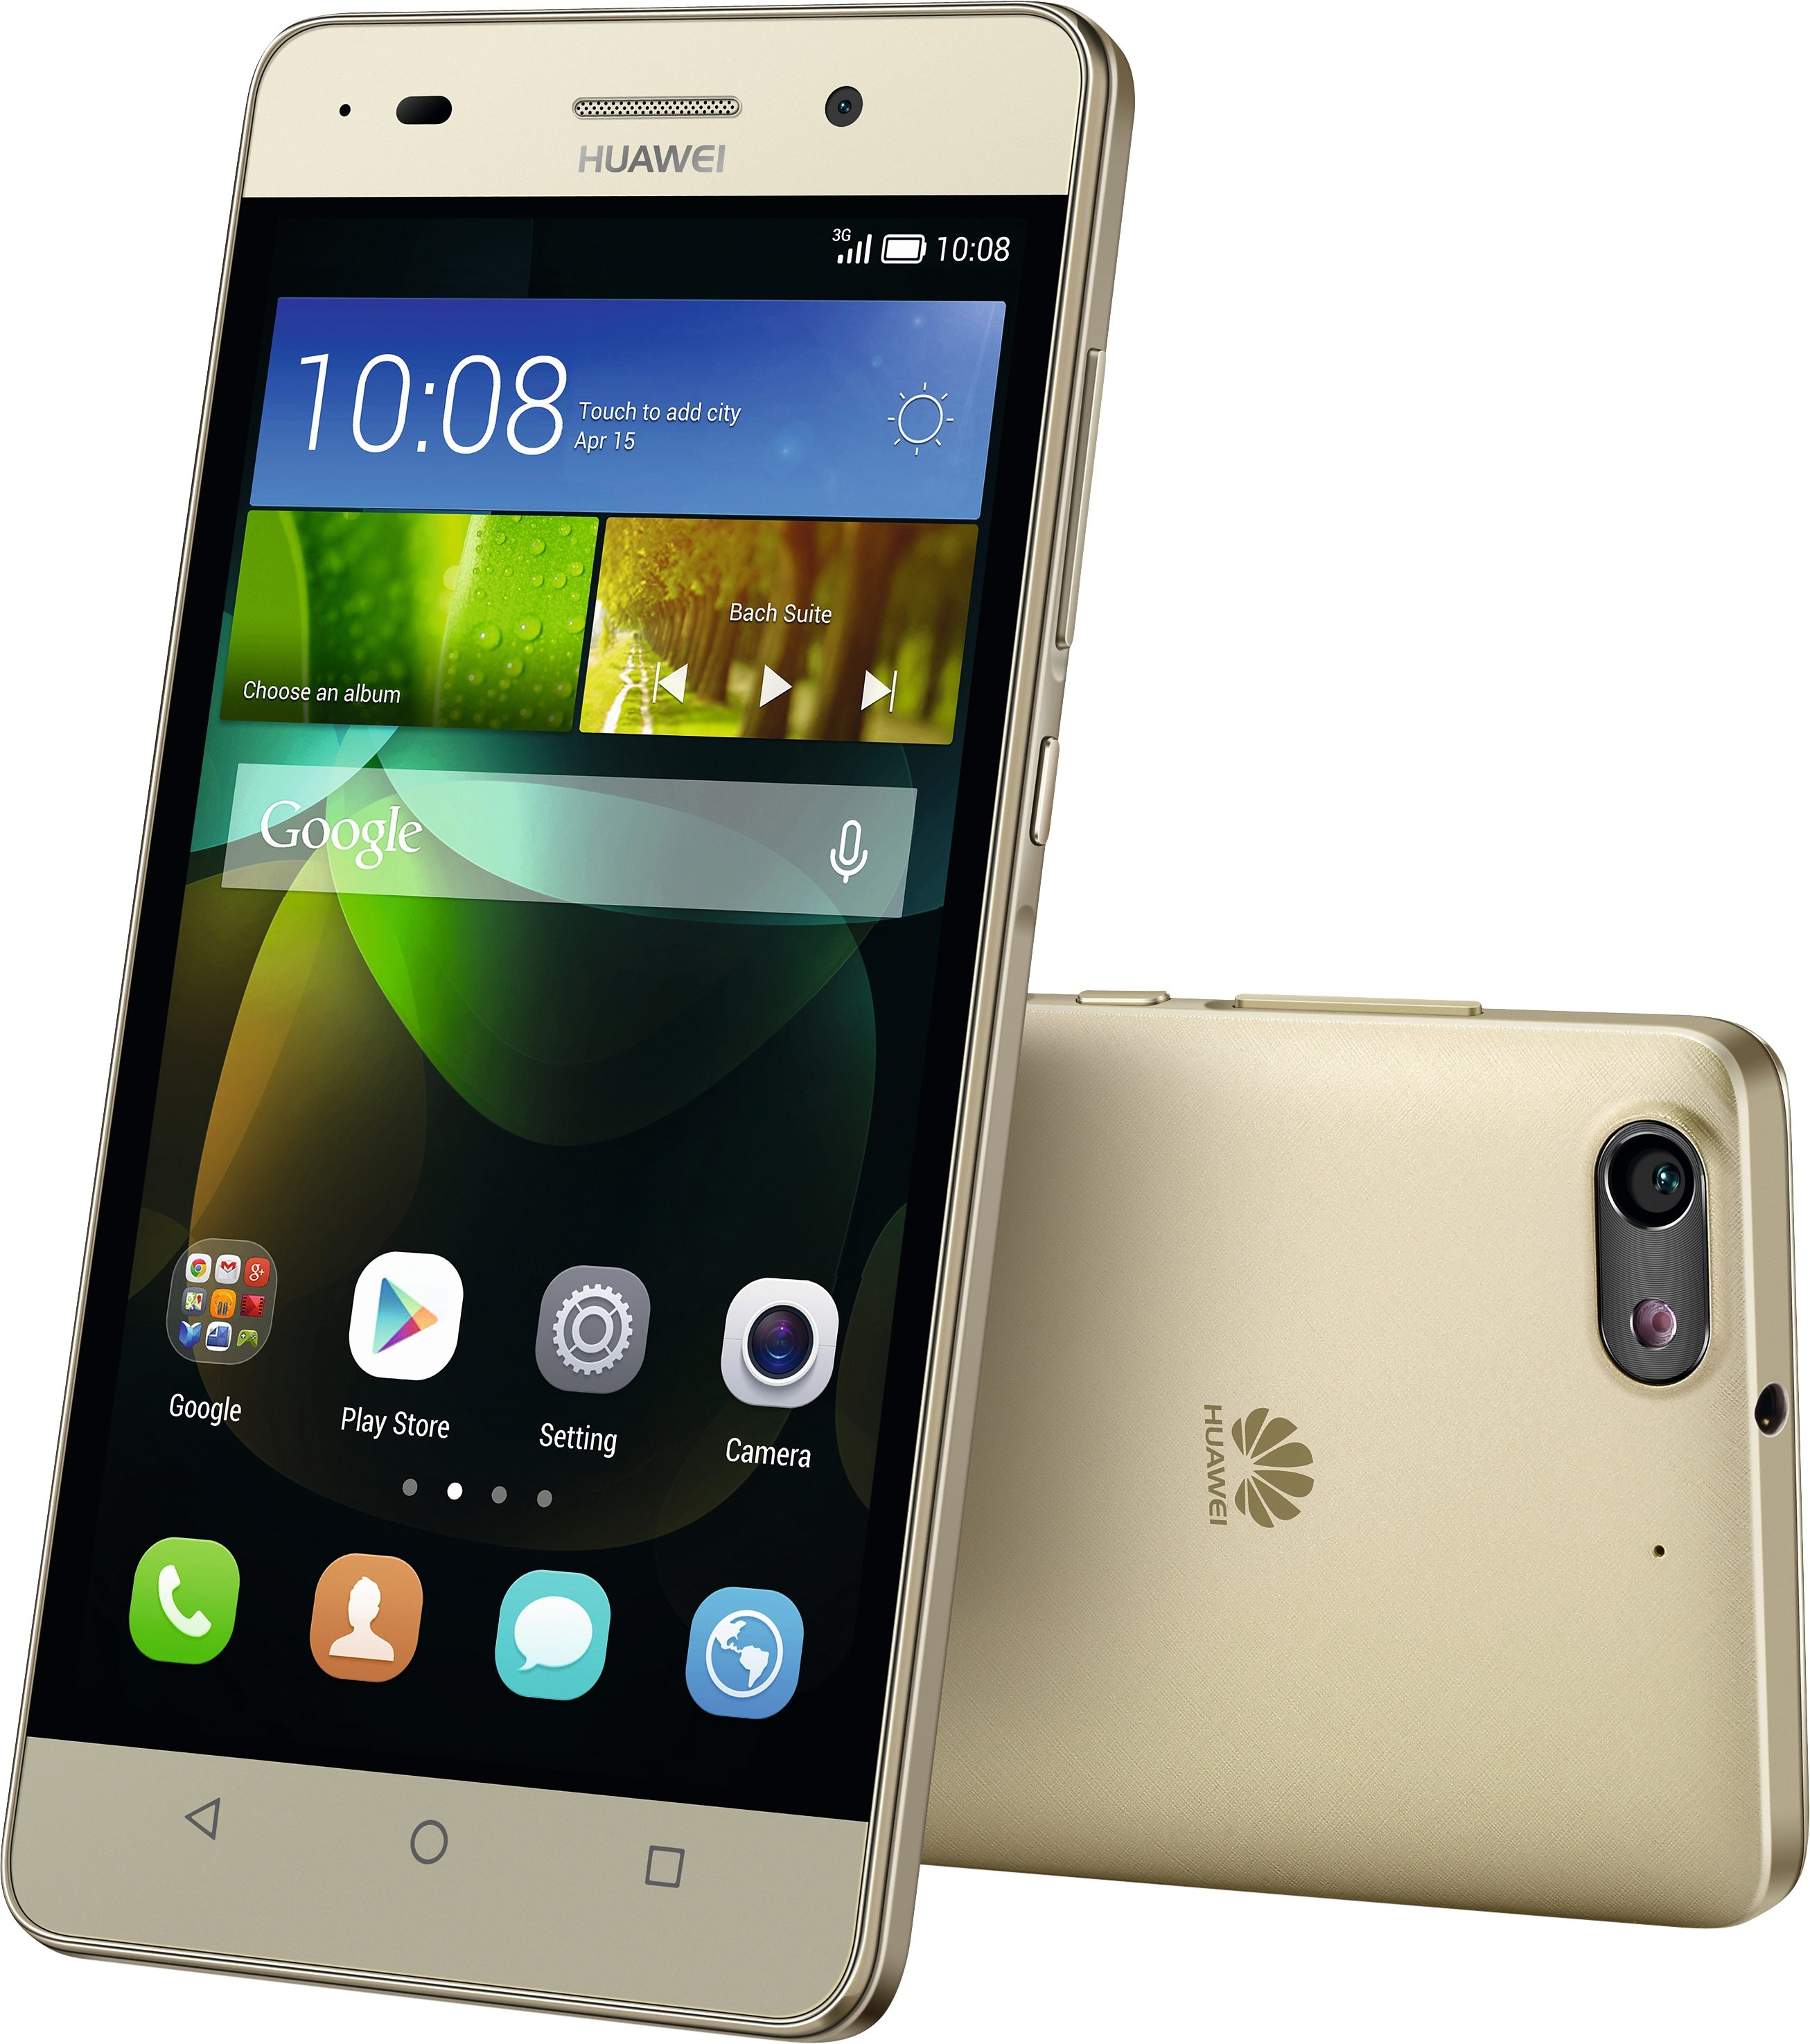 Huawei G PLAY mini Smartphone, 12,7 cm (5 Zoll) Display, Android 4.2.2, 13,0 Megapixel